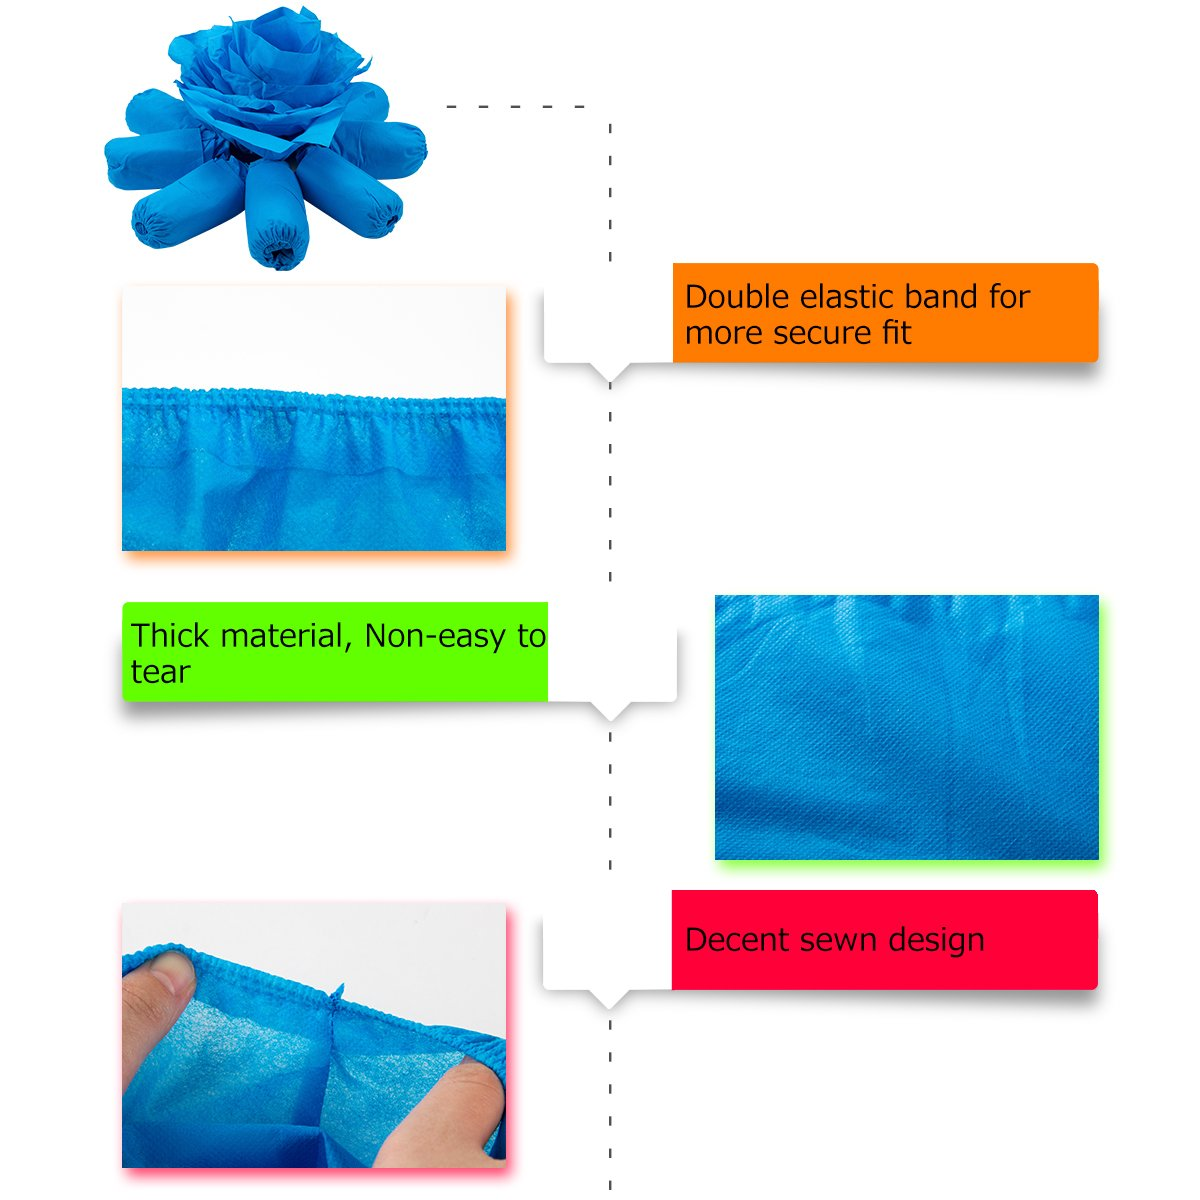 100 pcs Home Disposable Thick Boot & Shoe Cover (5g/pc) - Non-skid & Durable for Workplace, Medical, Indoor or Car Carpet Floor Protection by PAMASE (Image #5)